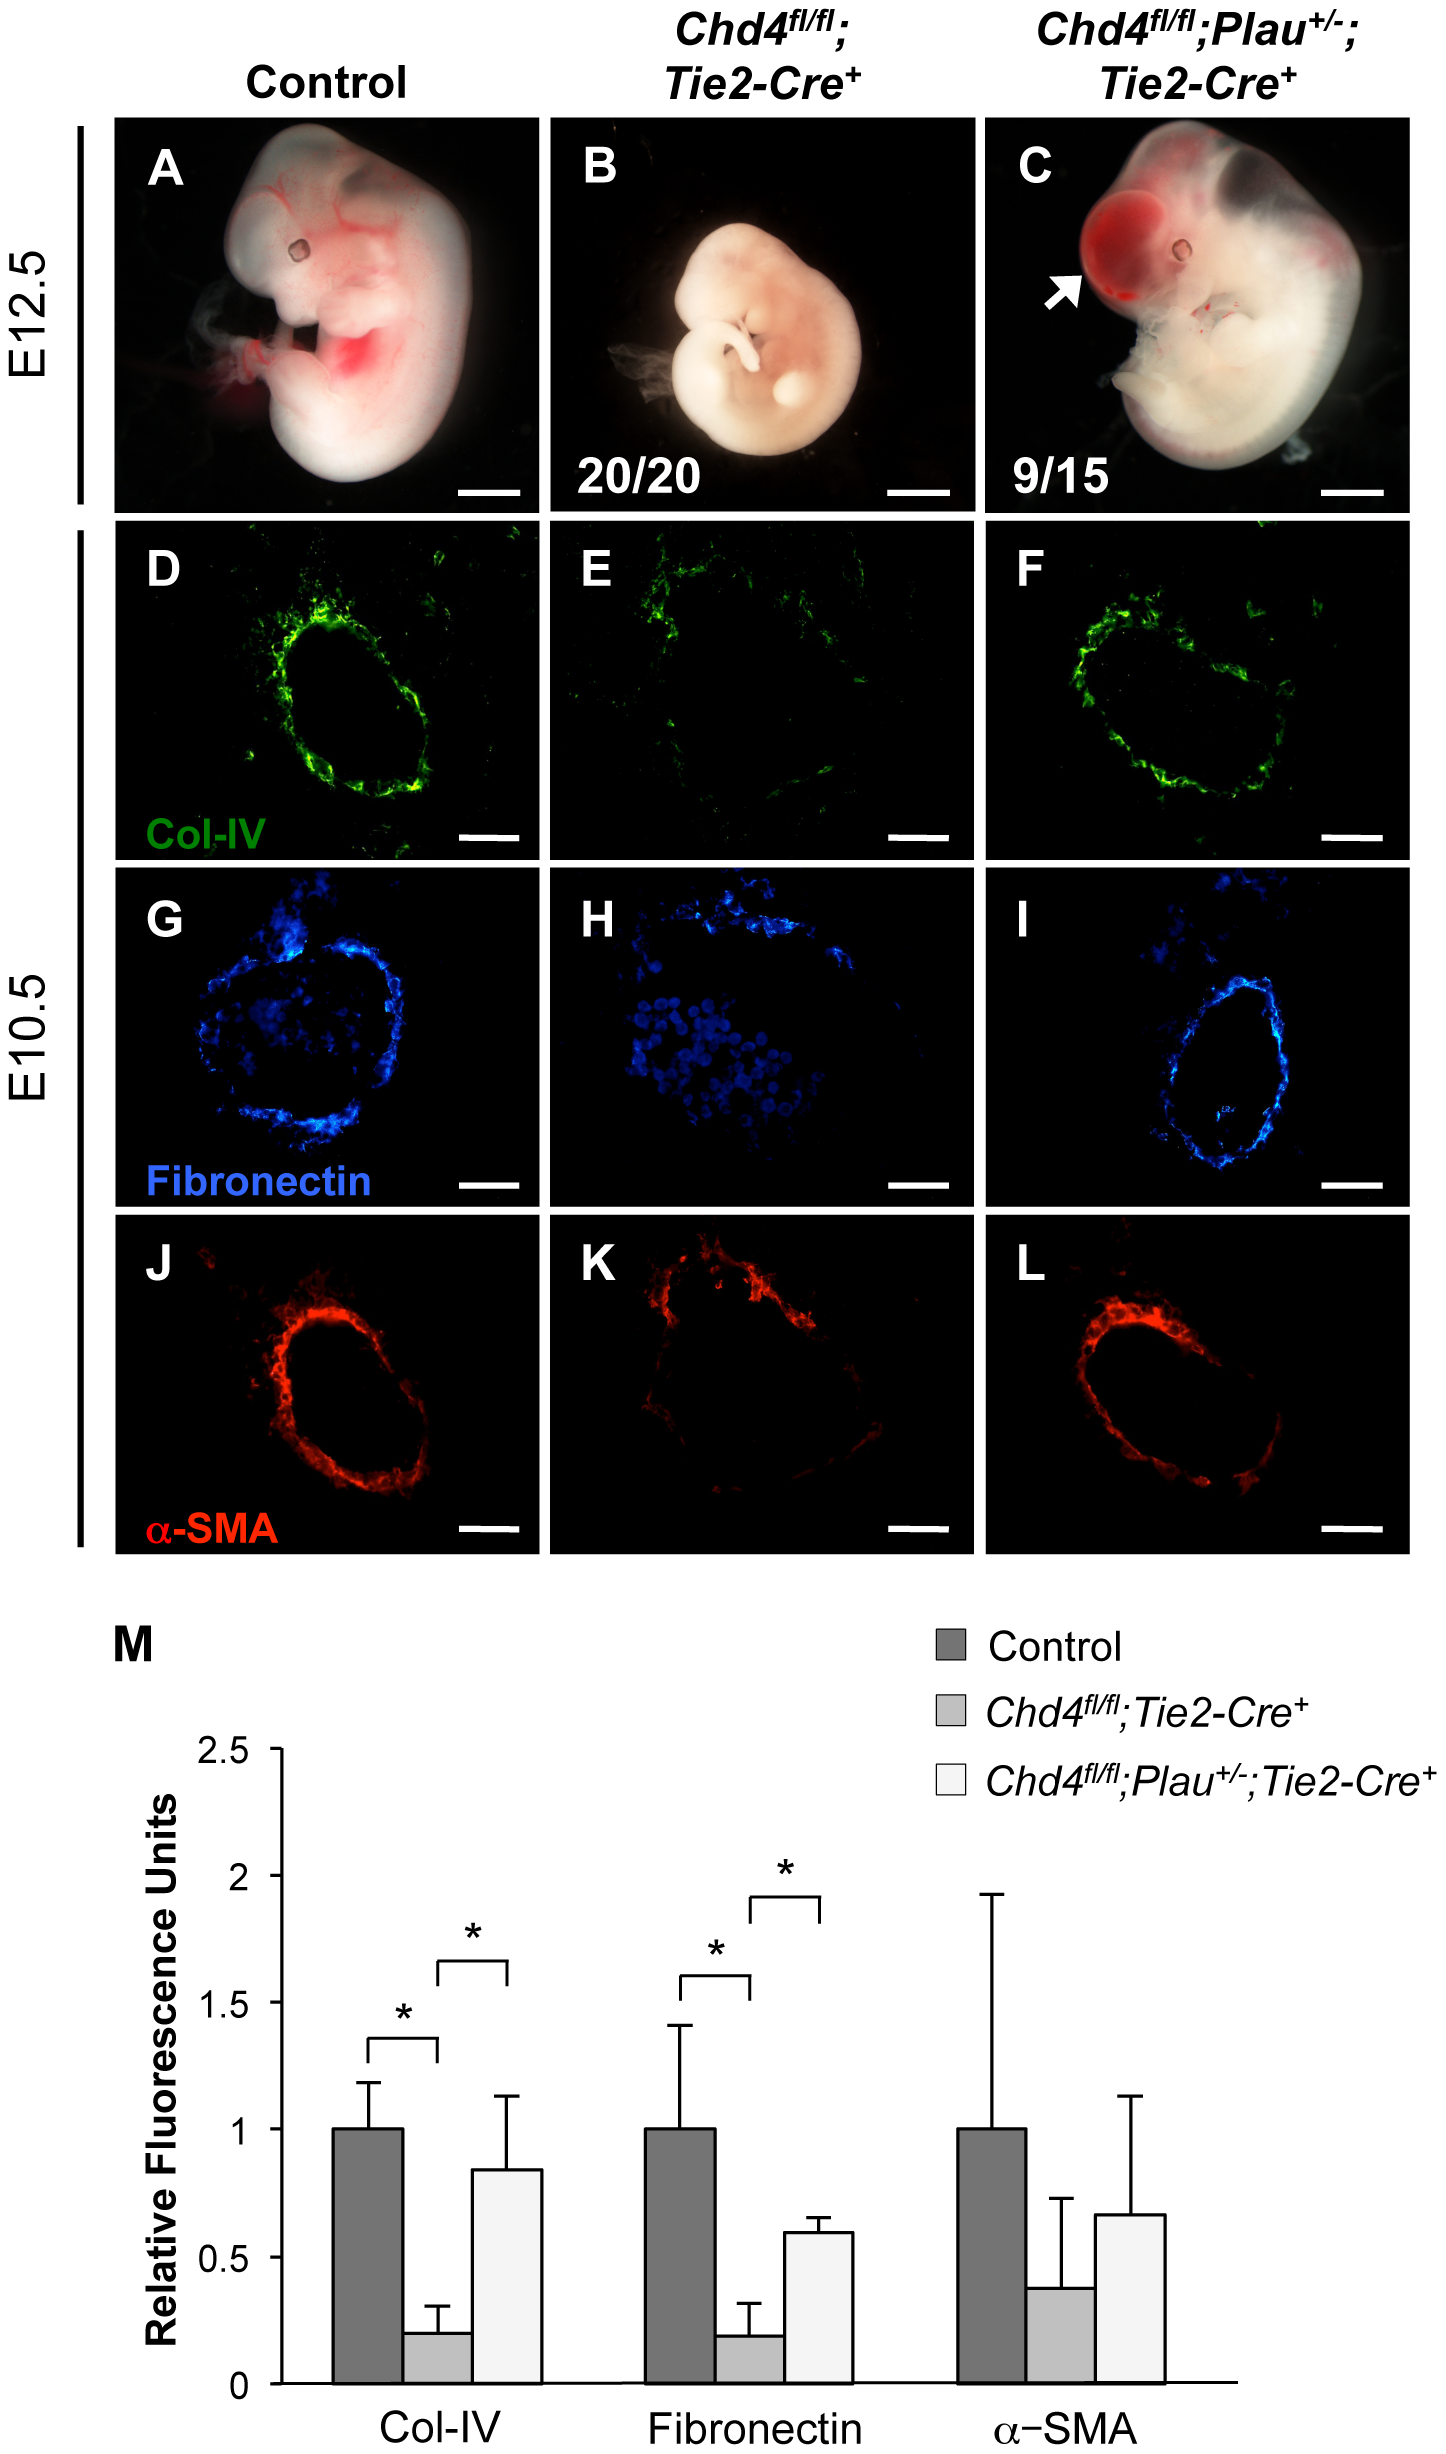 Genetic reduction of urokinase restores ECM components and partially rescues vascular rupture in <i>Chd4<sup>fl/fl</sup>;Tie2-Cre<sup>+</sup></i> embryos.